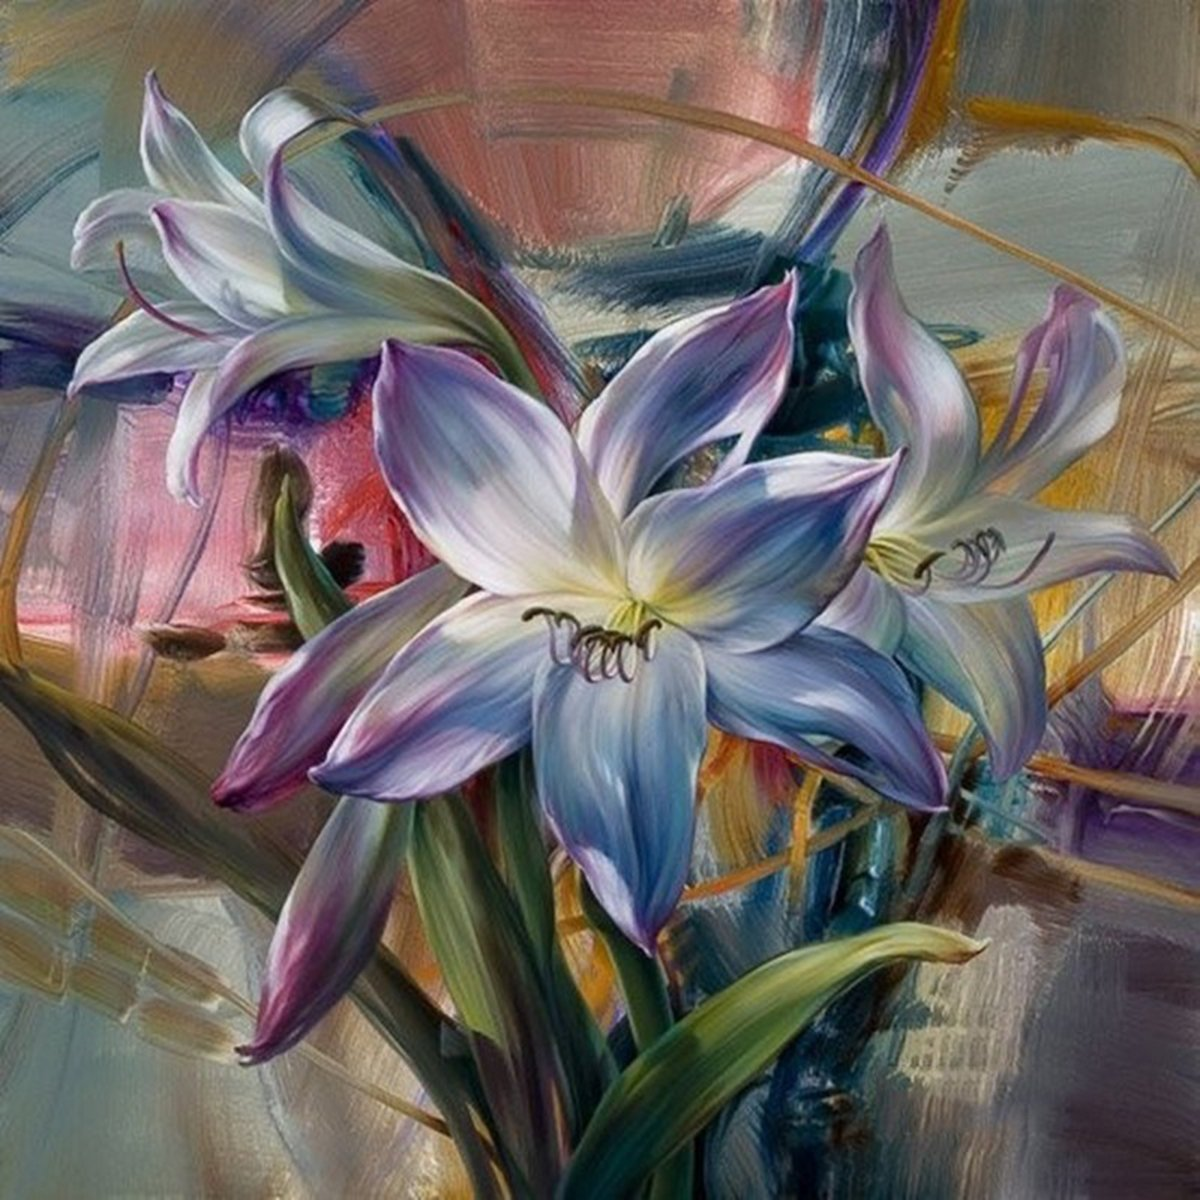 Shukqueen Diy Oil Painting, Adult's Paint by Number Kits, Acrylic Painting-Blooming orchids 16X20 Inch (Framed Canvas)